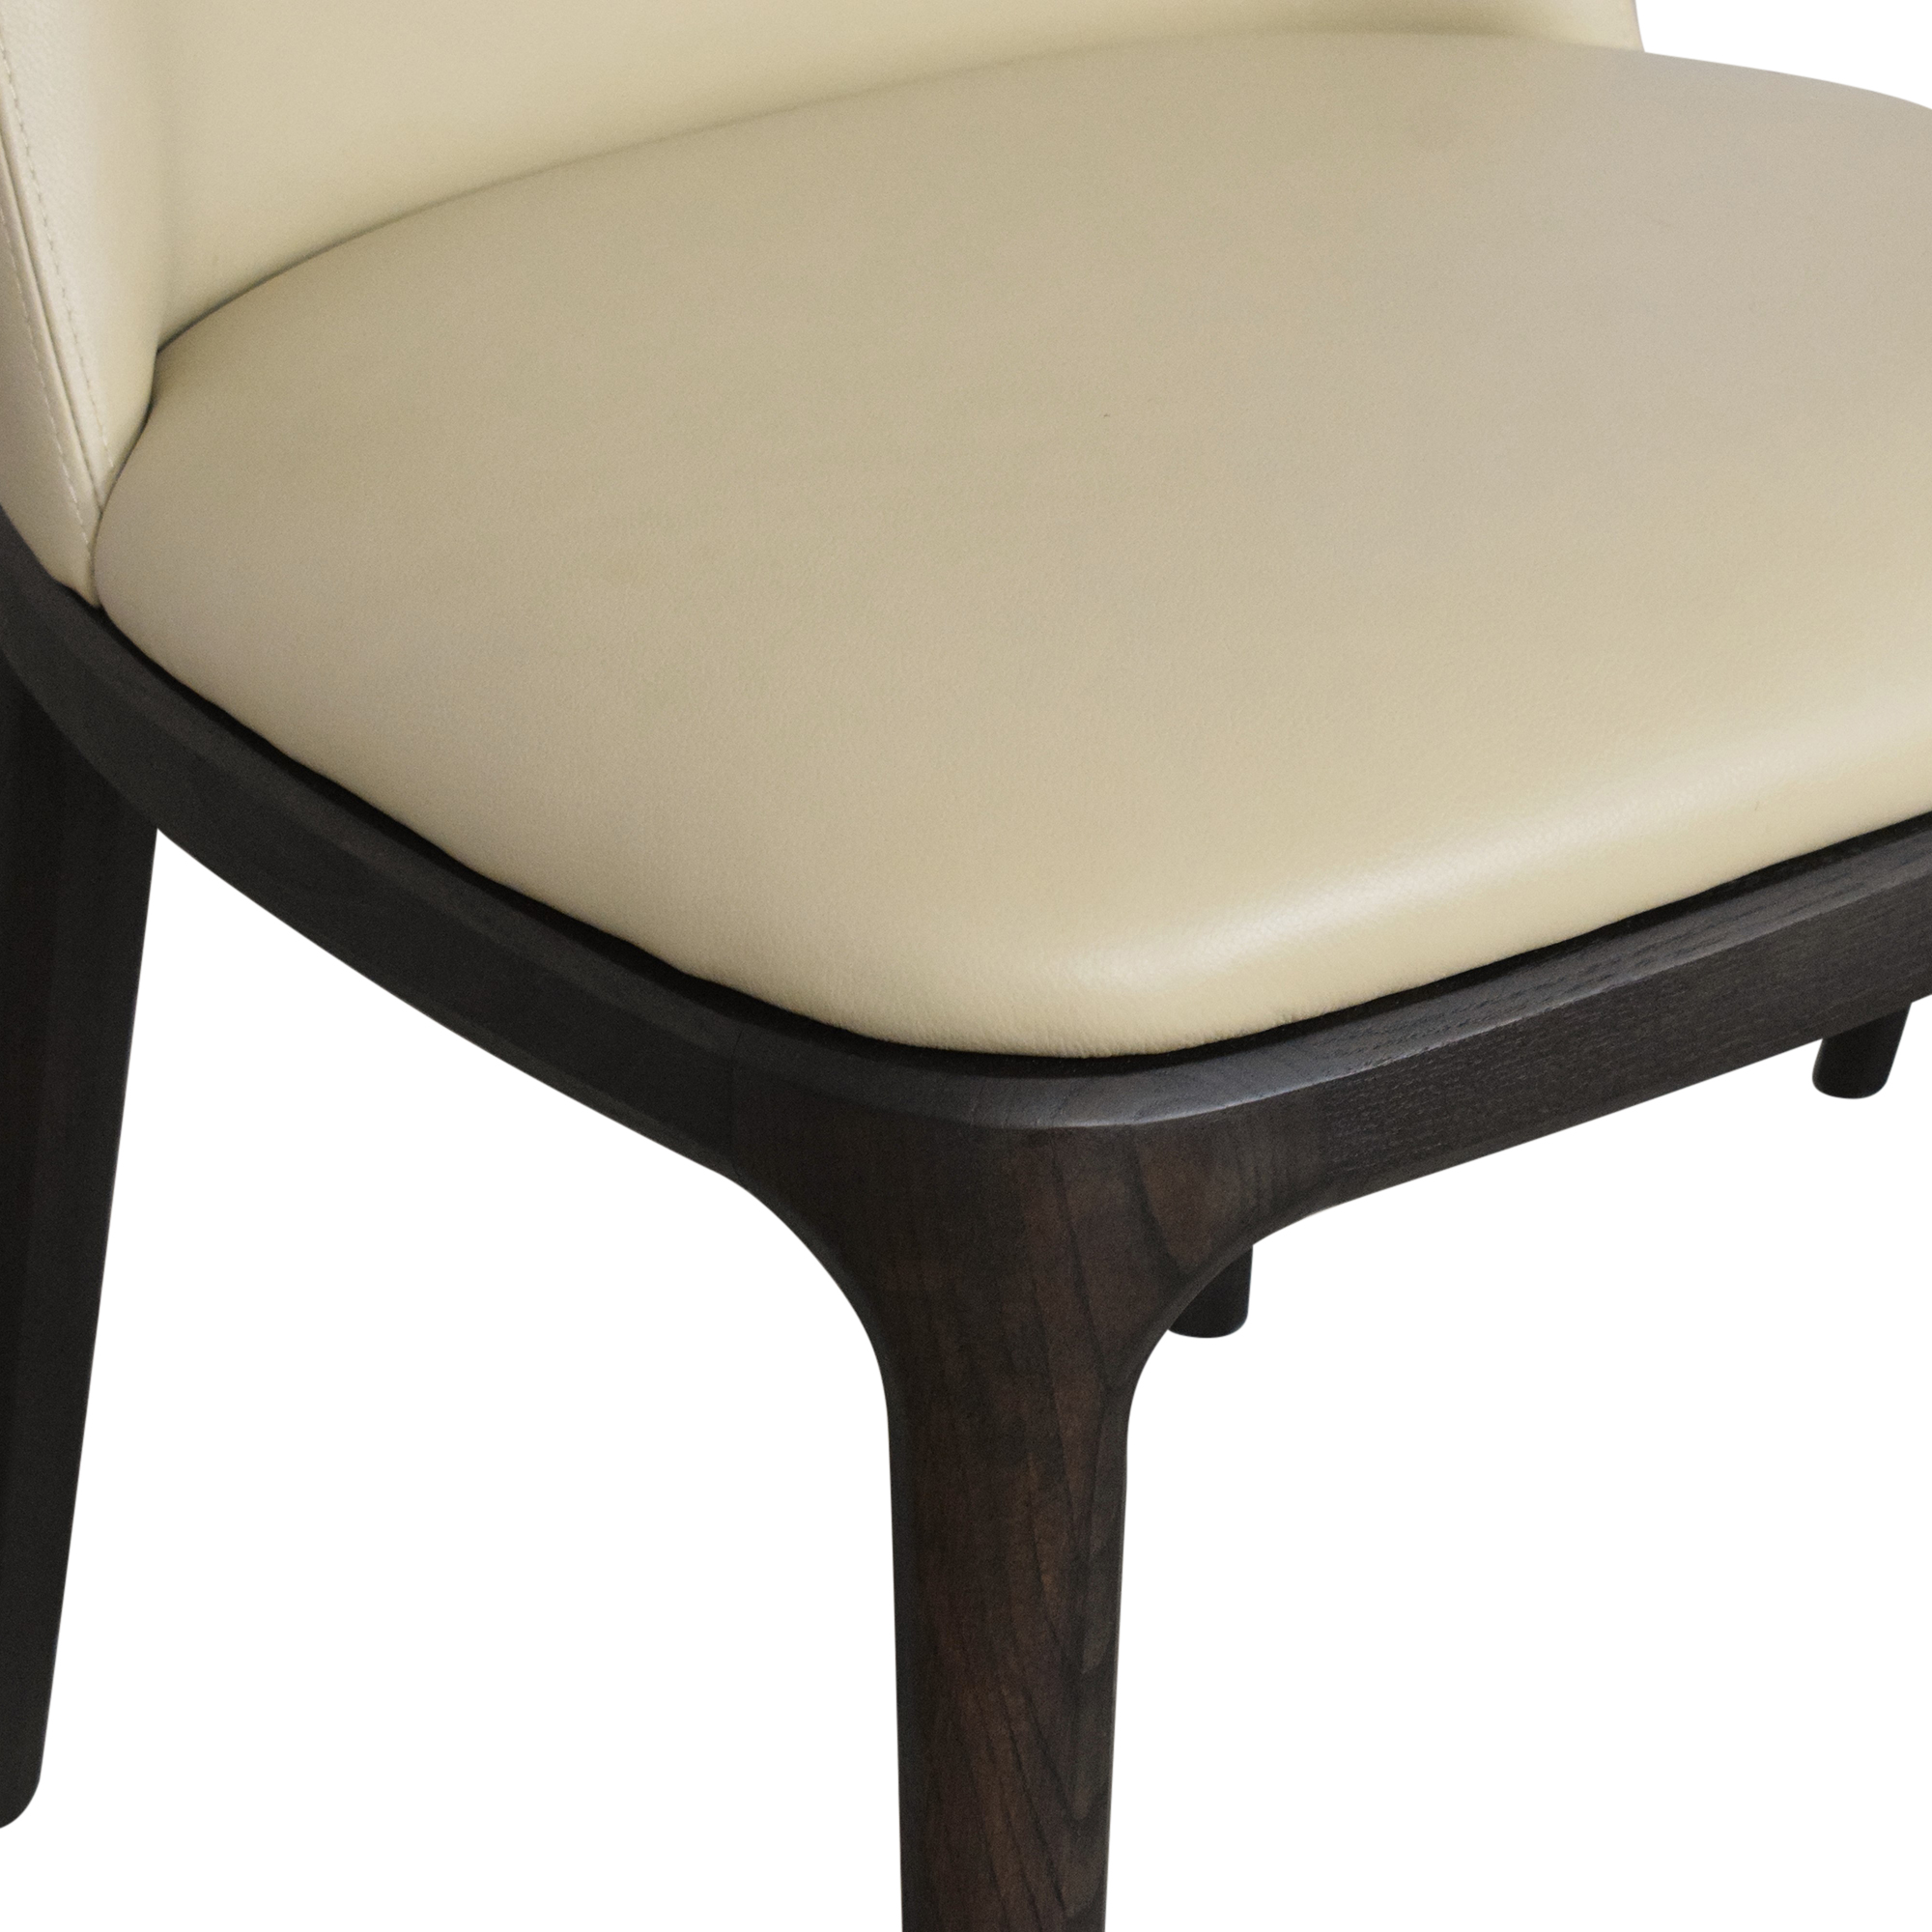 Poliform Grace Chairs / Dining Chairs